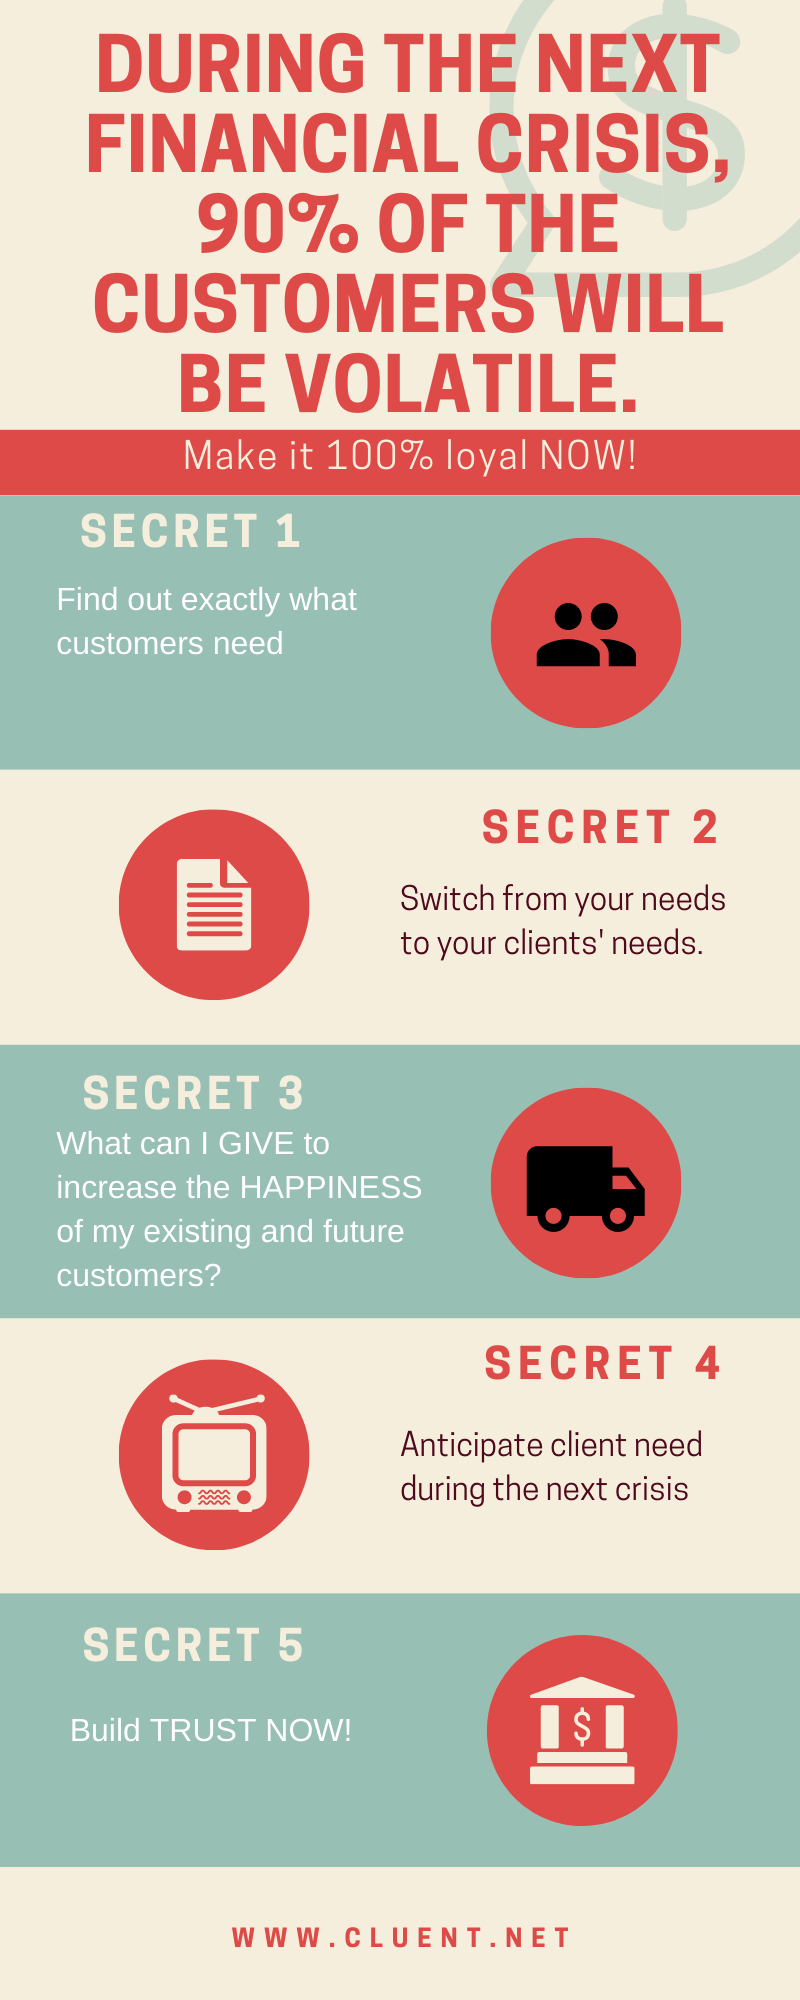 secrets to loyal customers